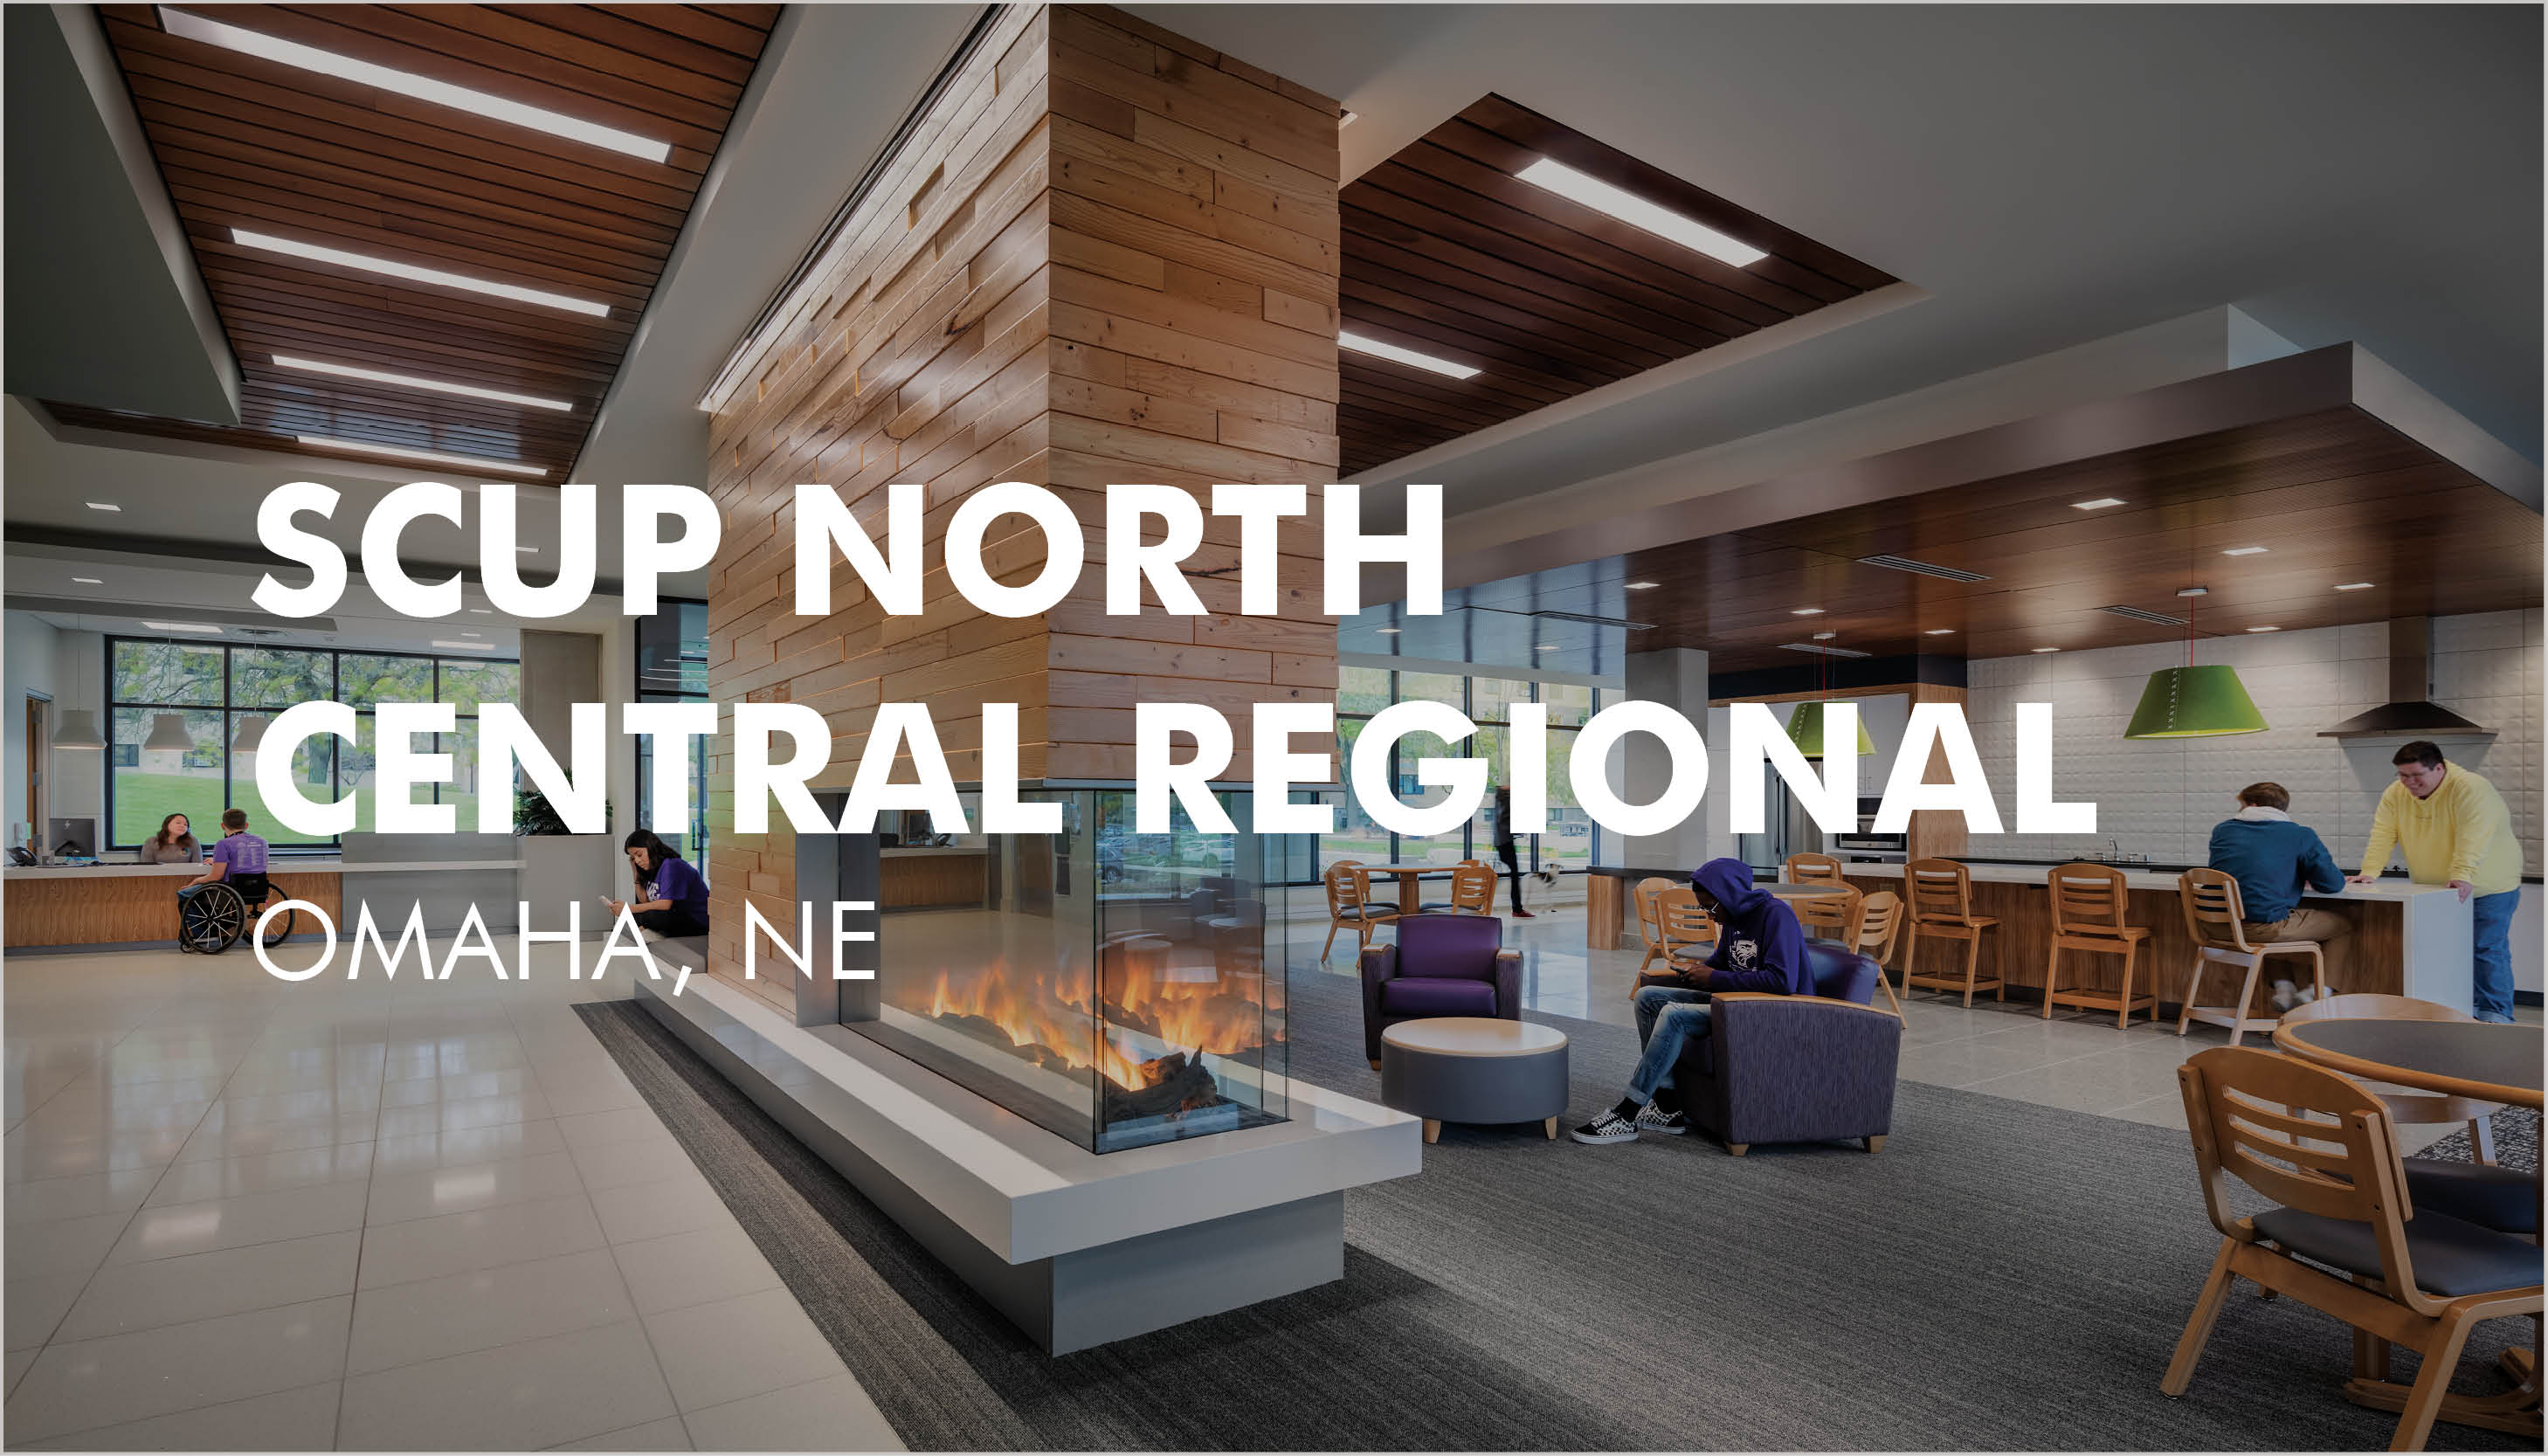 SCUP 2019 North Central Regional Conference Image